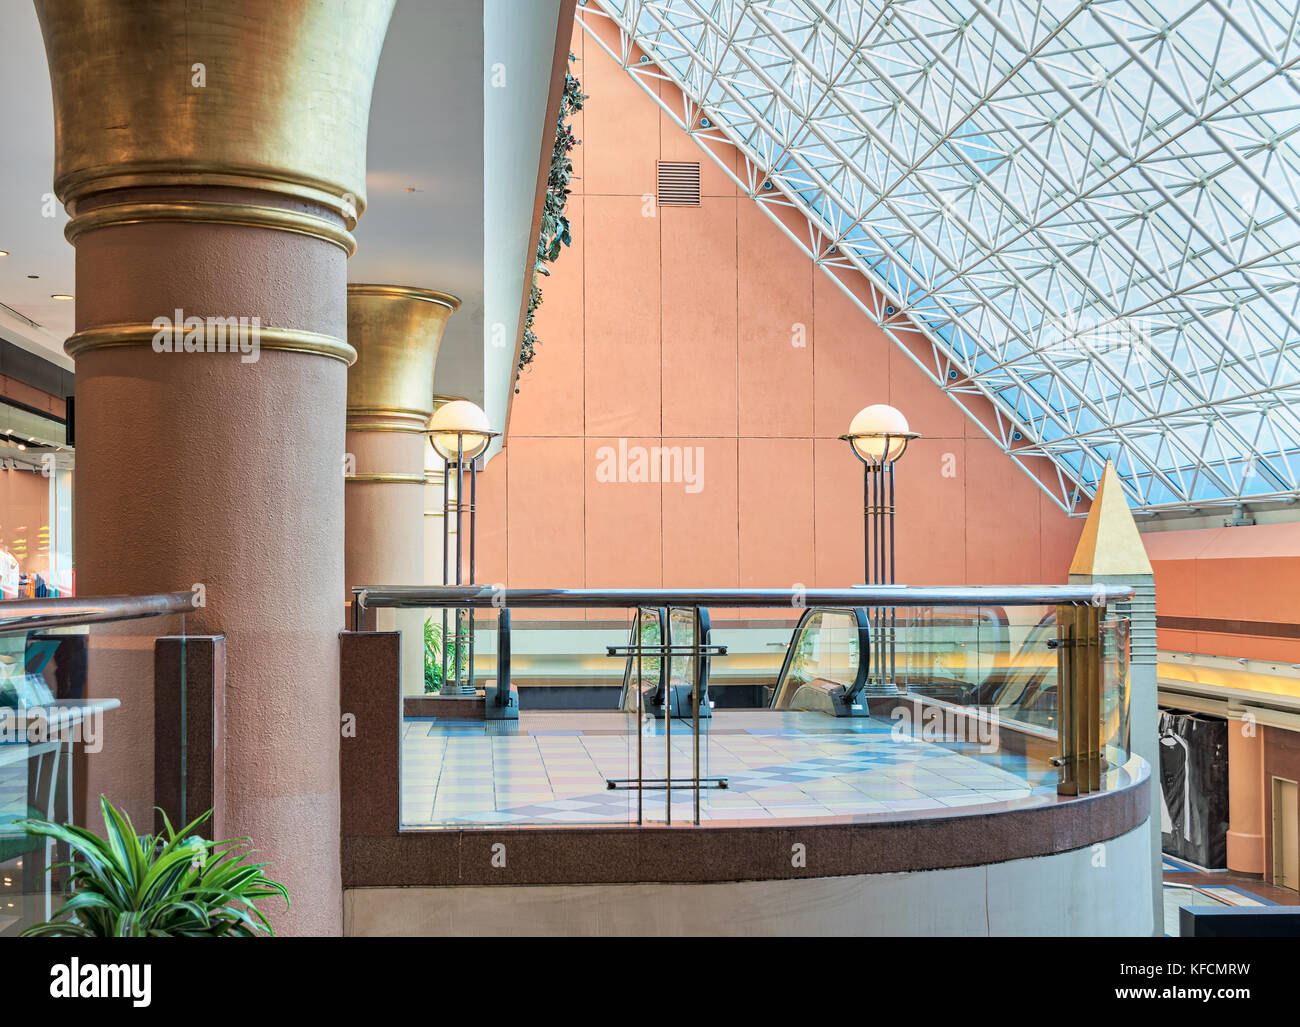 Modern shopping mall interior with glass balustrade transparent glass roof revealing blue sky - Stock Image